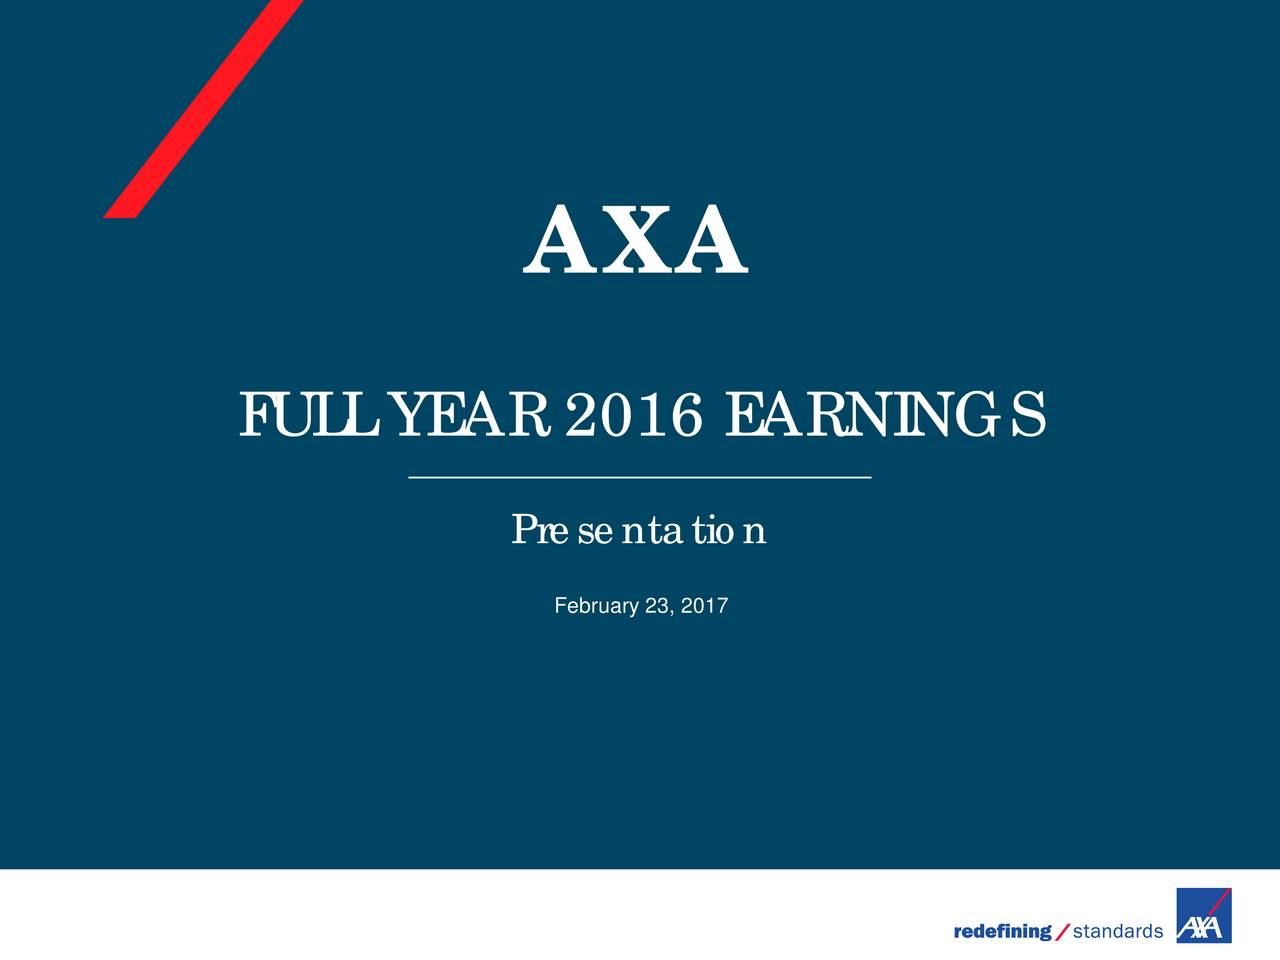 FULL YEAR 2016 EARNINGS Presentation February 23, 2017